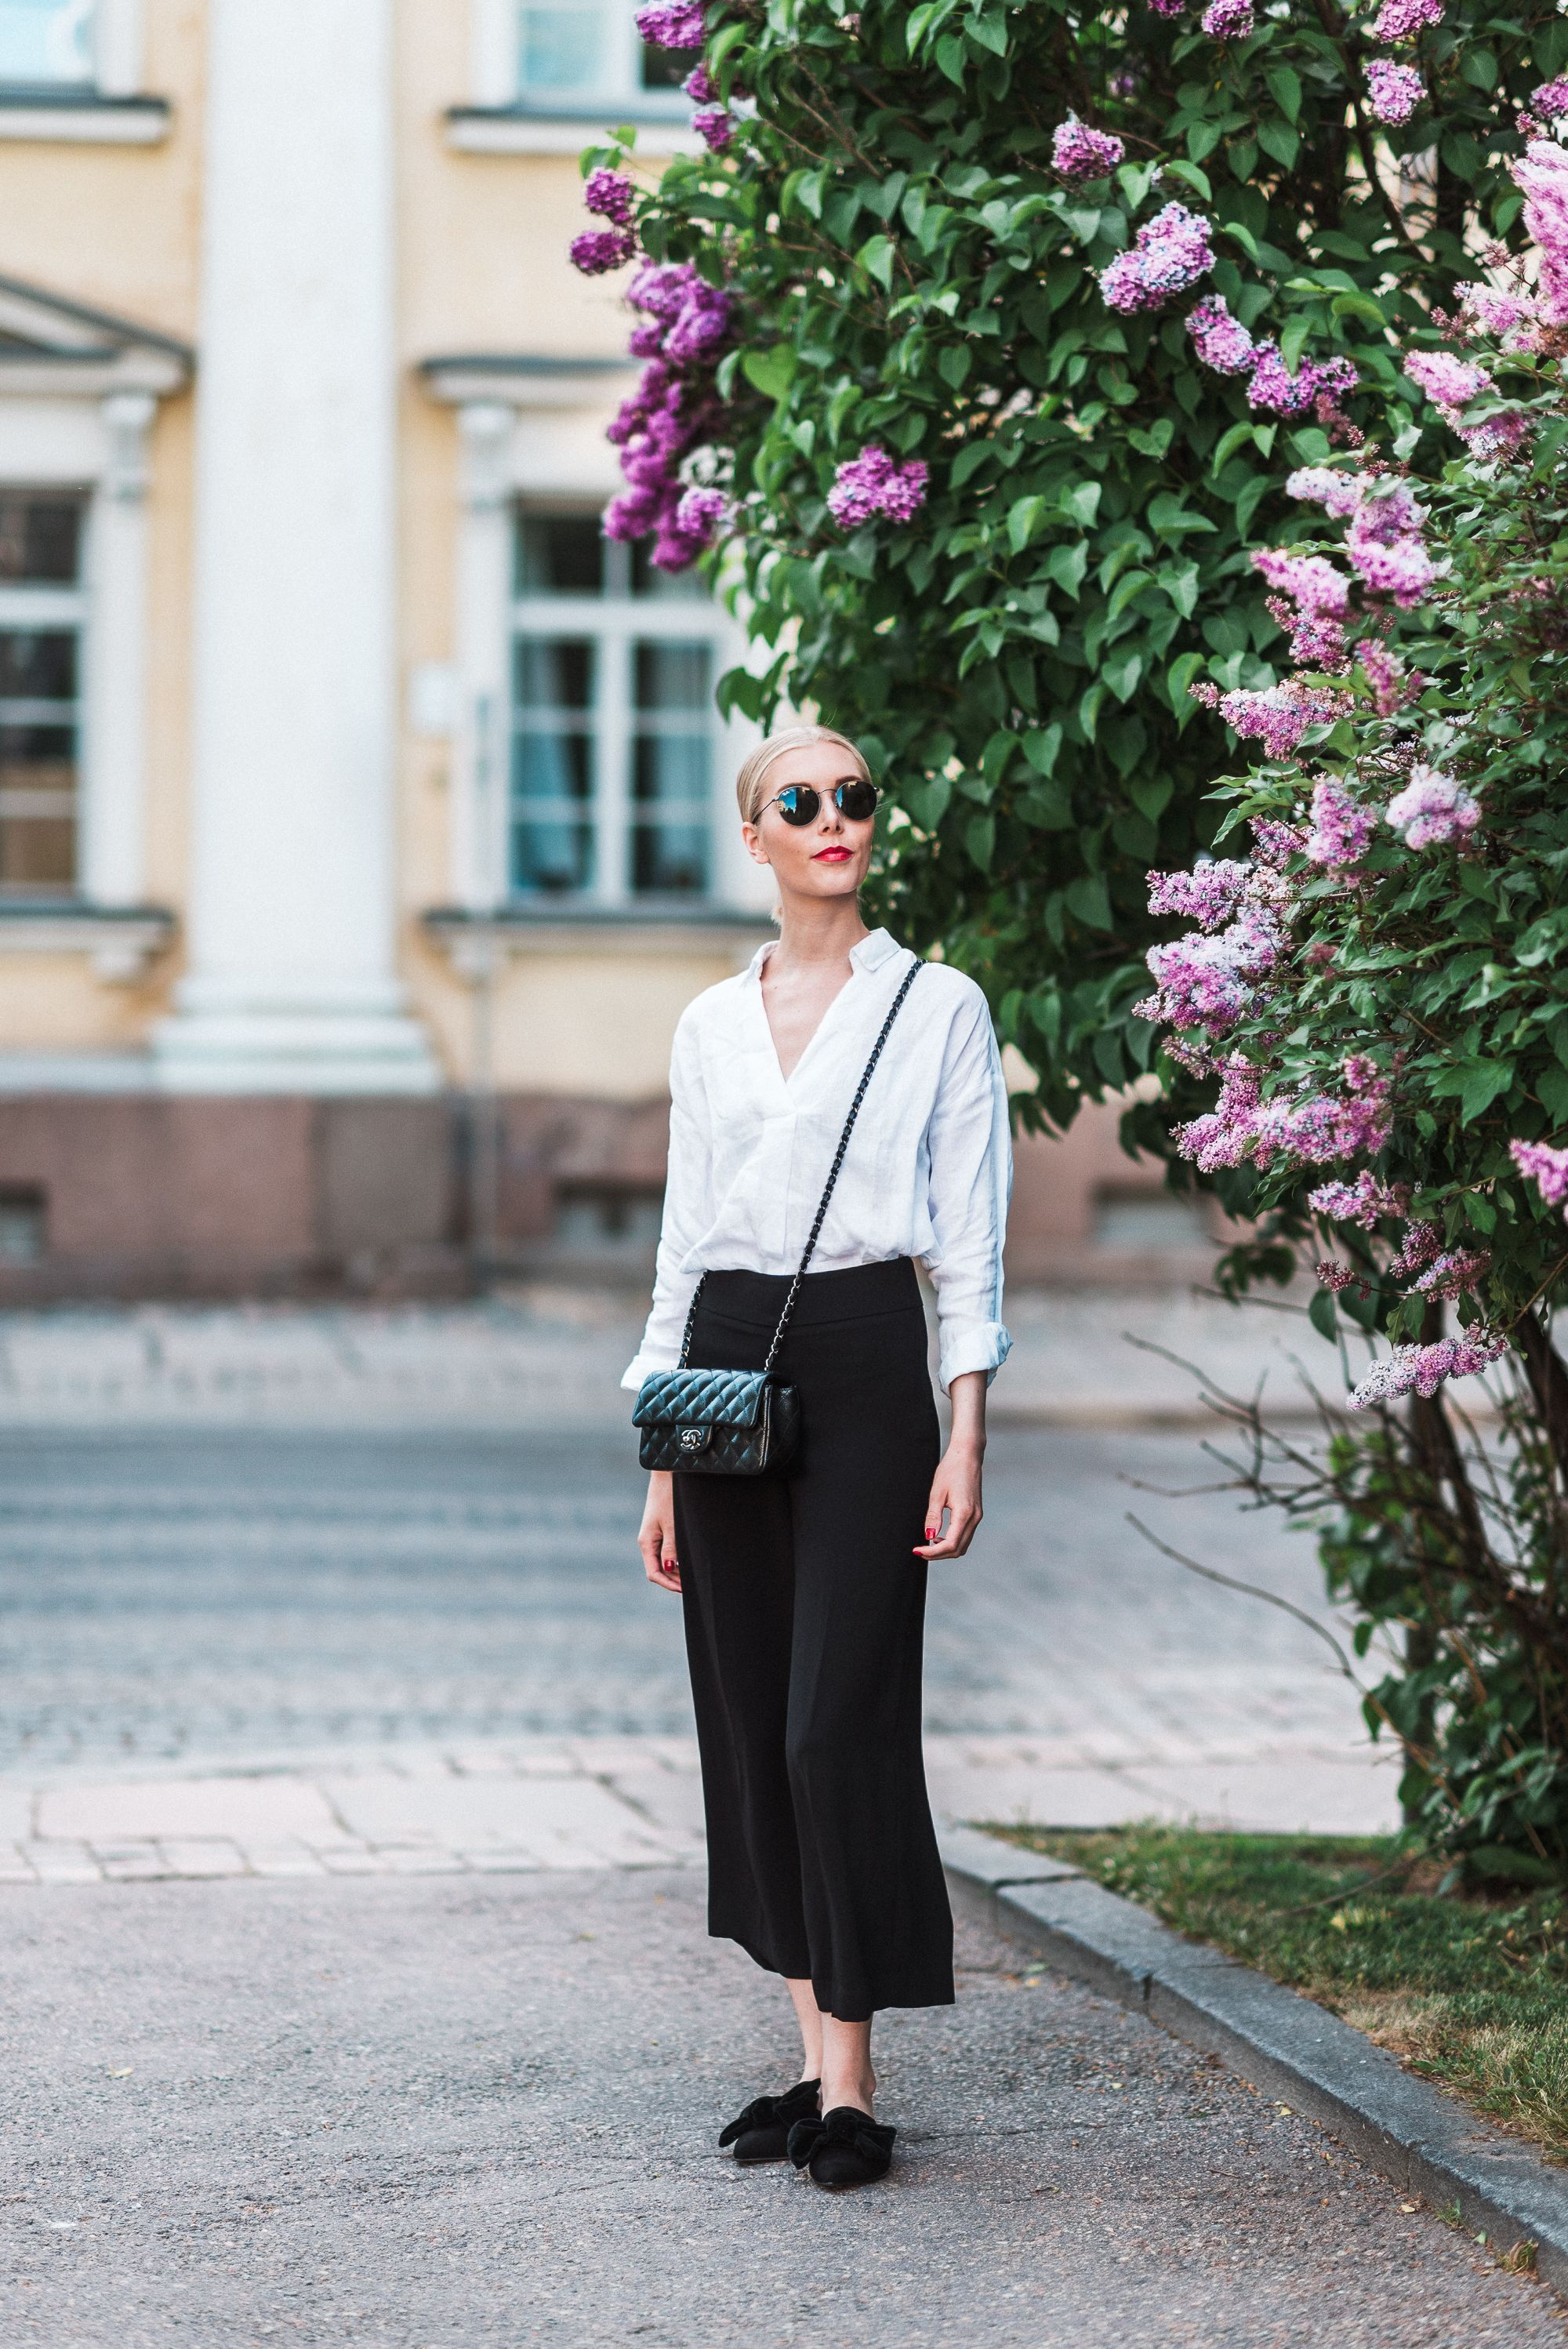 Most Recent Images Swedish Style Clothing Suggestions Will It Be The Perfect Time To Vary Yo In 2020 Scandinavian Style Clothes Scandinavian Fashion Stockholm Fashion